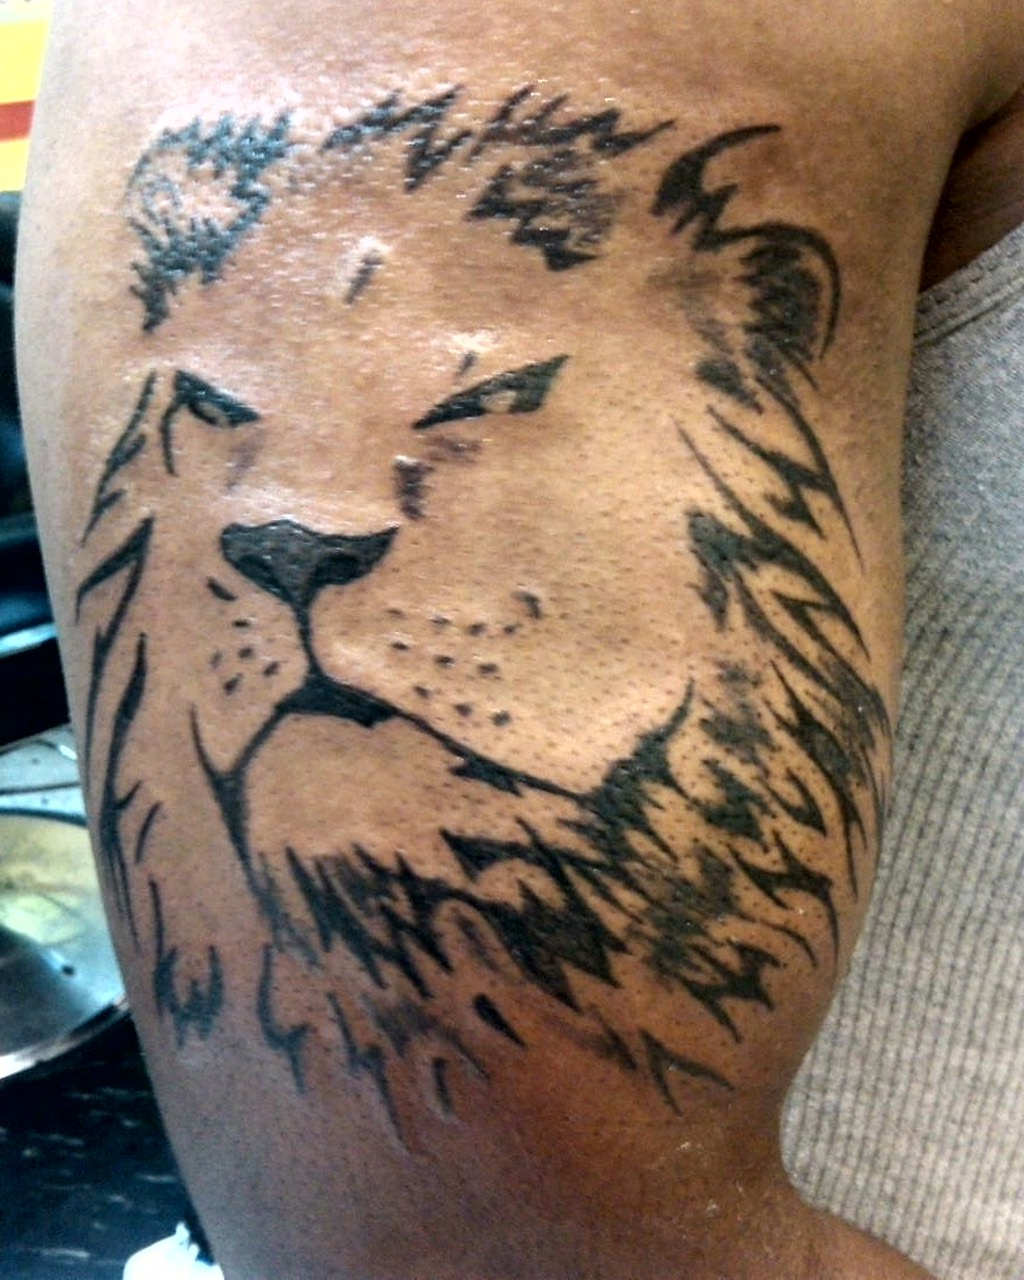 Black Ink Aggressive Lion Tattoo On Men's Bicep